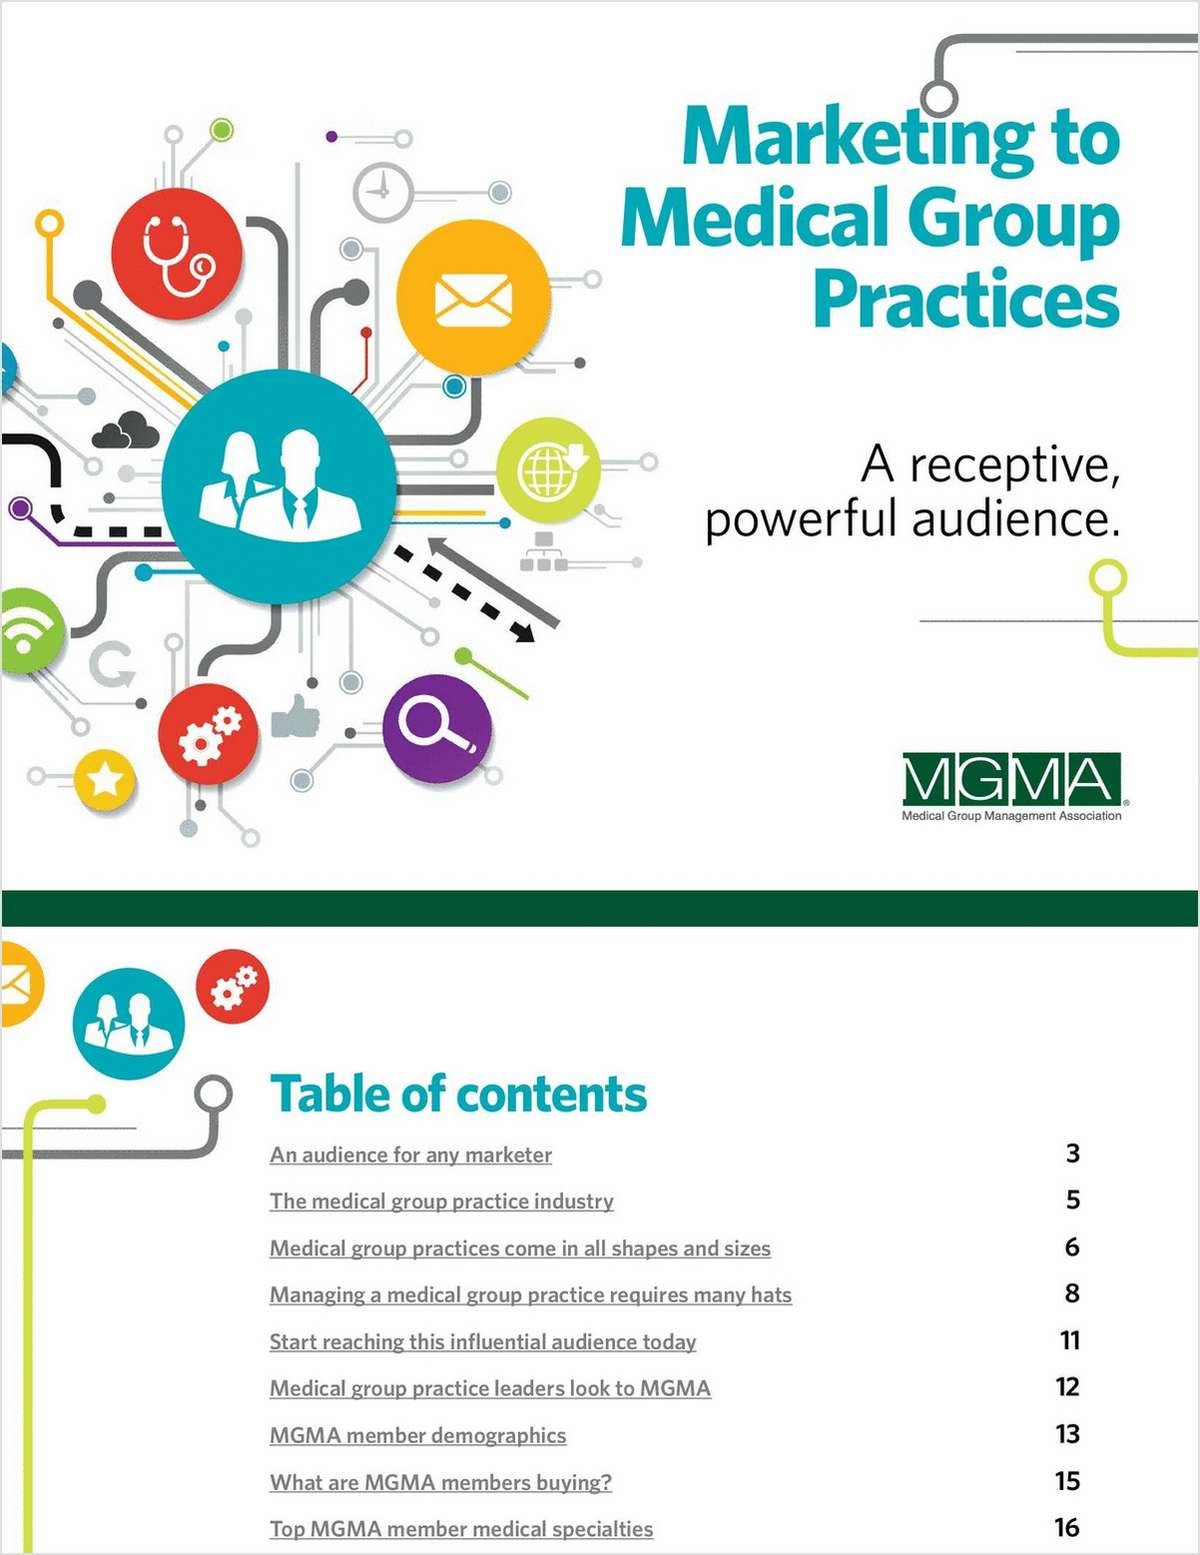 Marketing to Medical Group Practices – A Receptive, Powerful Audience